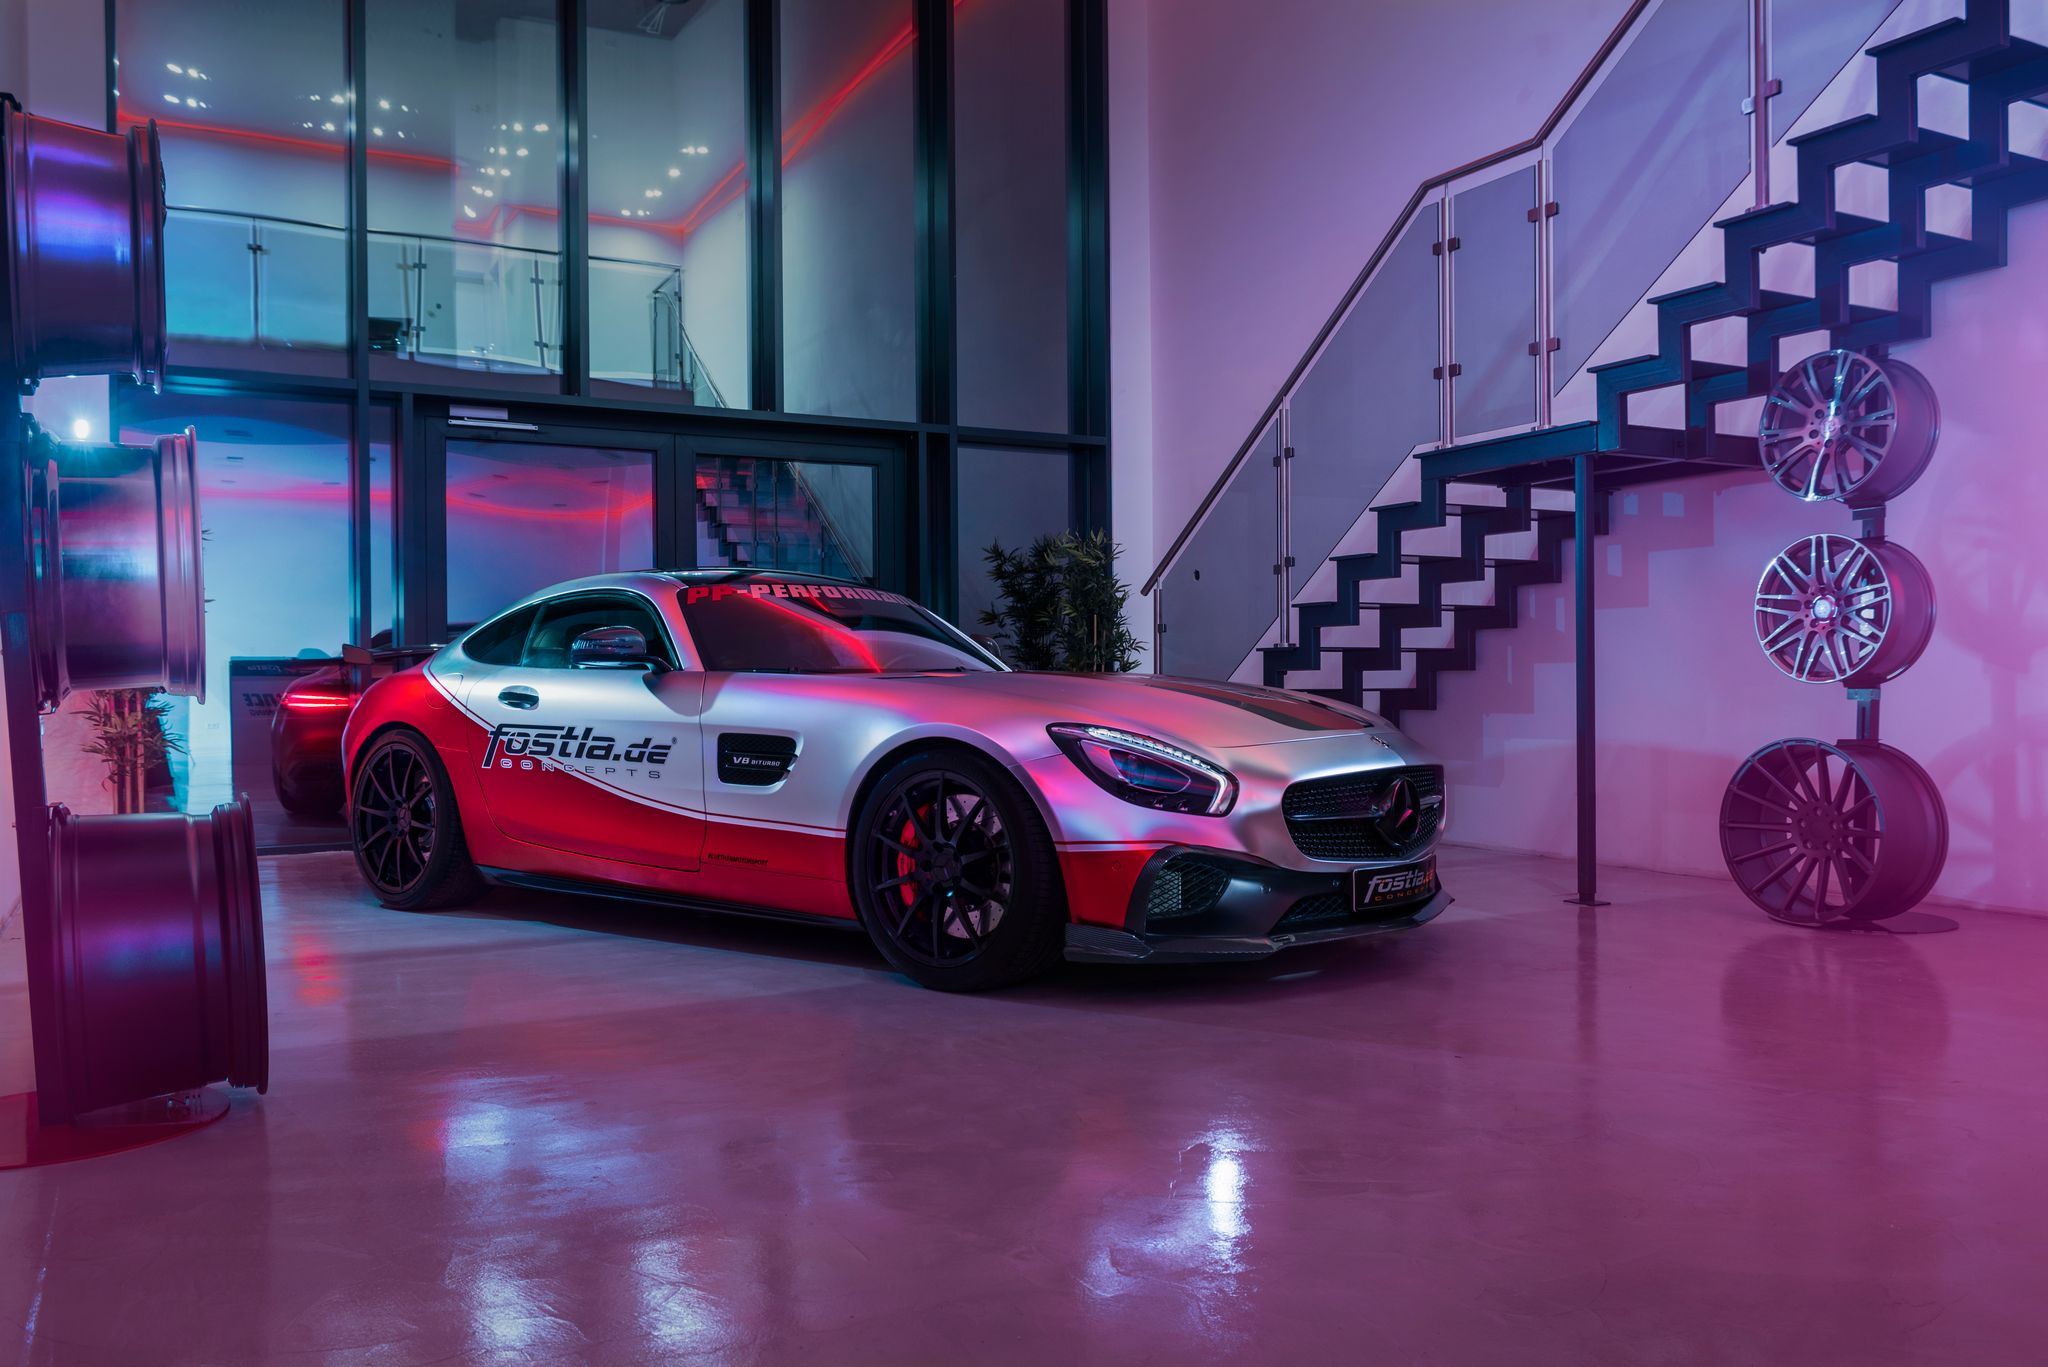 The German car design studio Fostla has revealed an options package for the Mercedes-AMG GT S sport coupe